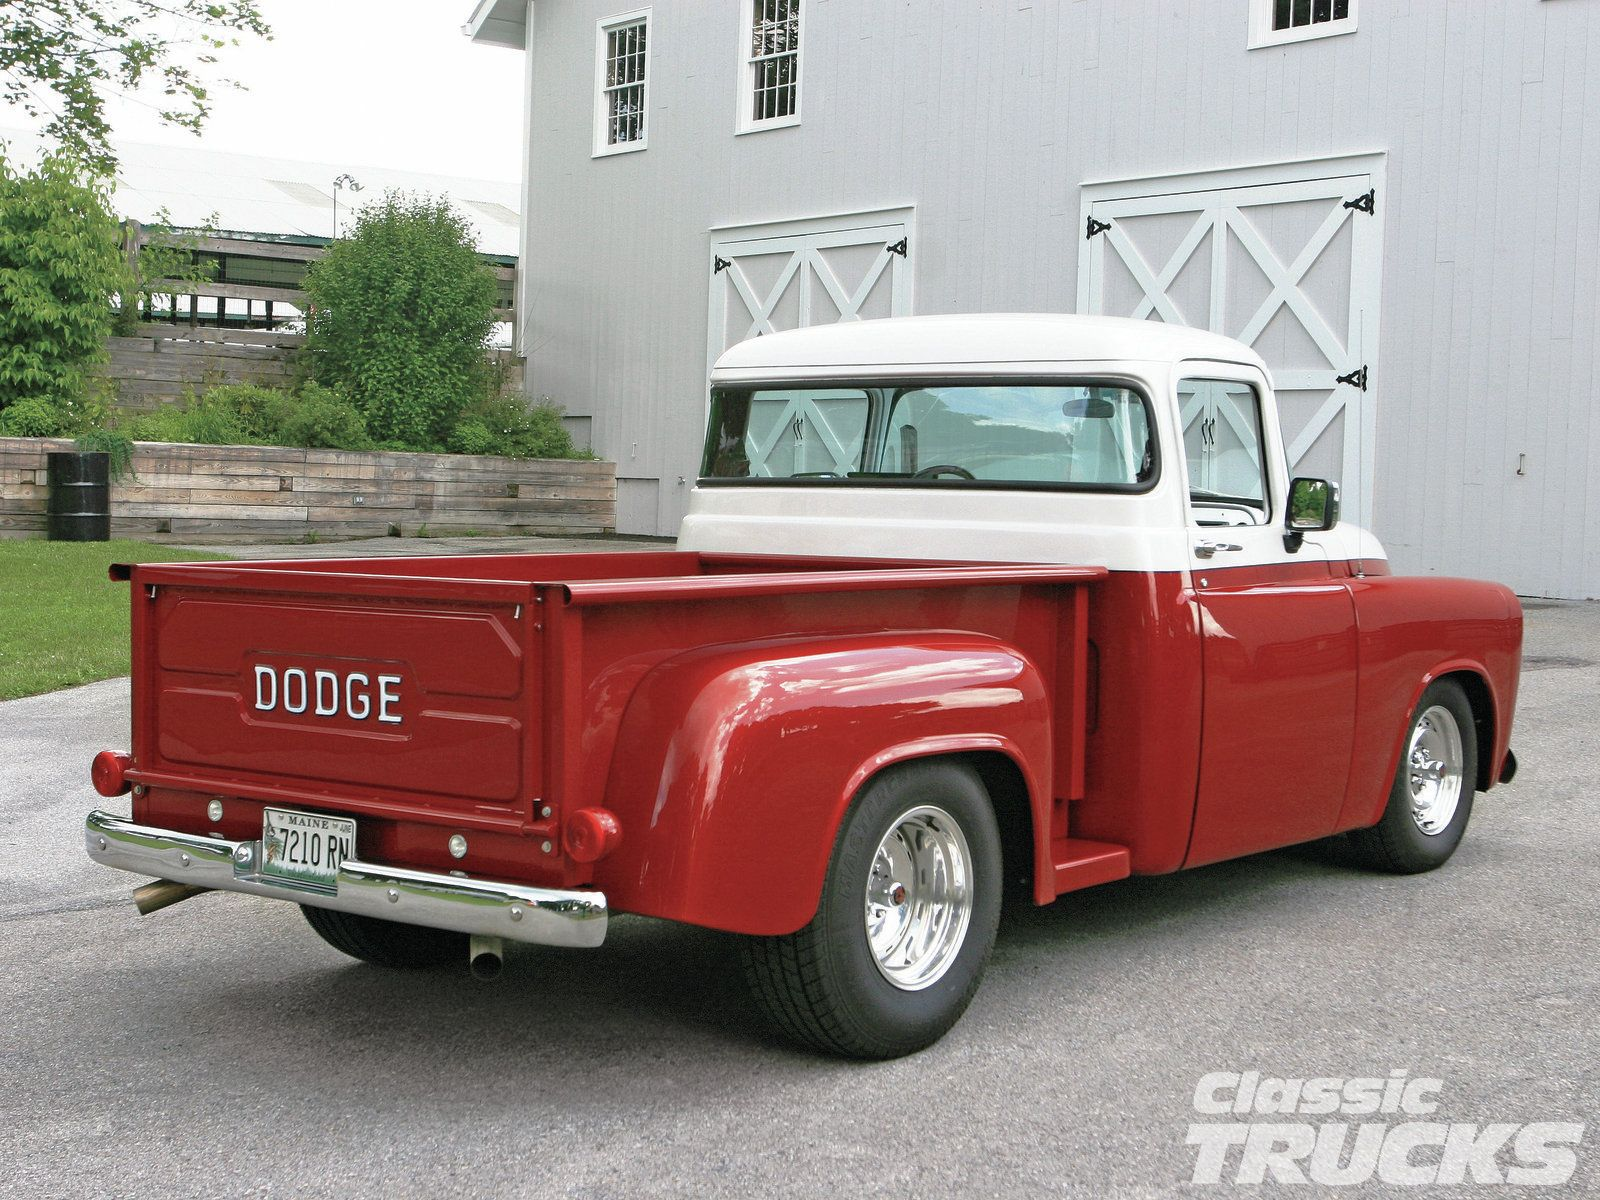 classic dodge trucks 1957 dodge truck rear photo 4 trucks pinterest dodge trucks and dodge. Black Bedroom Furniture Sets. Home Design Ideas